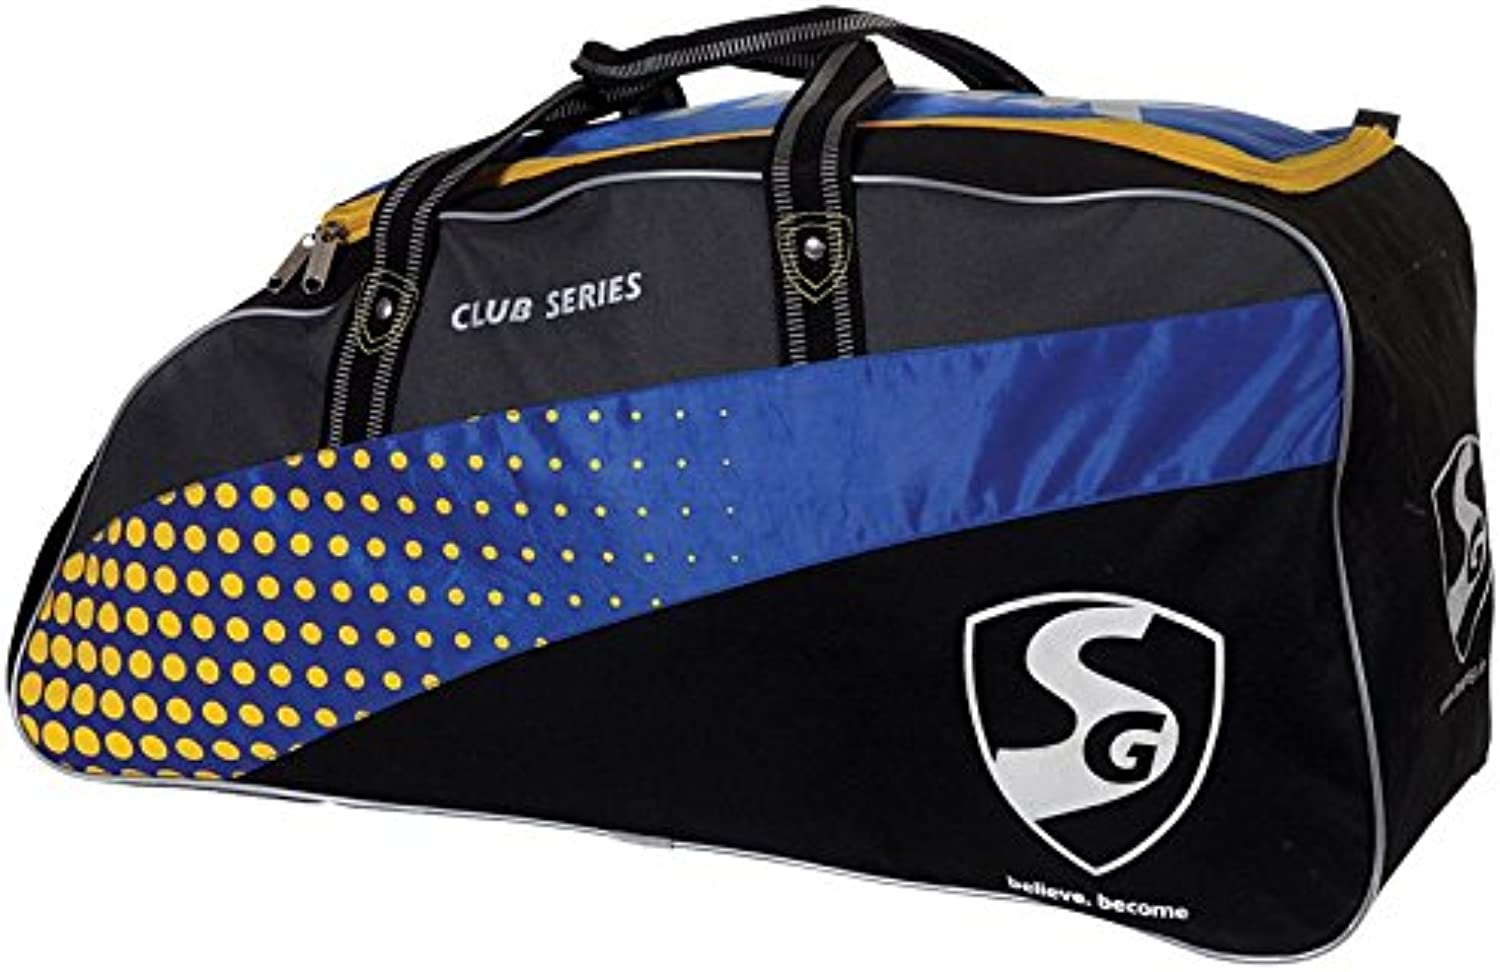 SG Kitpak Cricket Bag Full Size